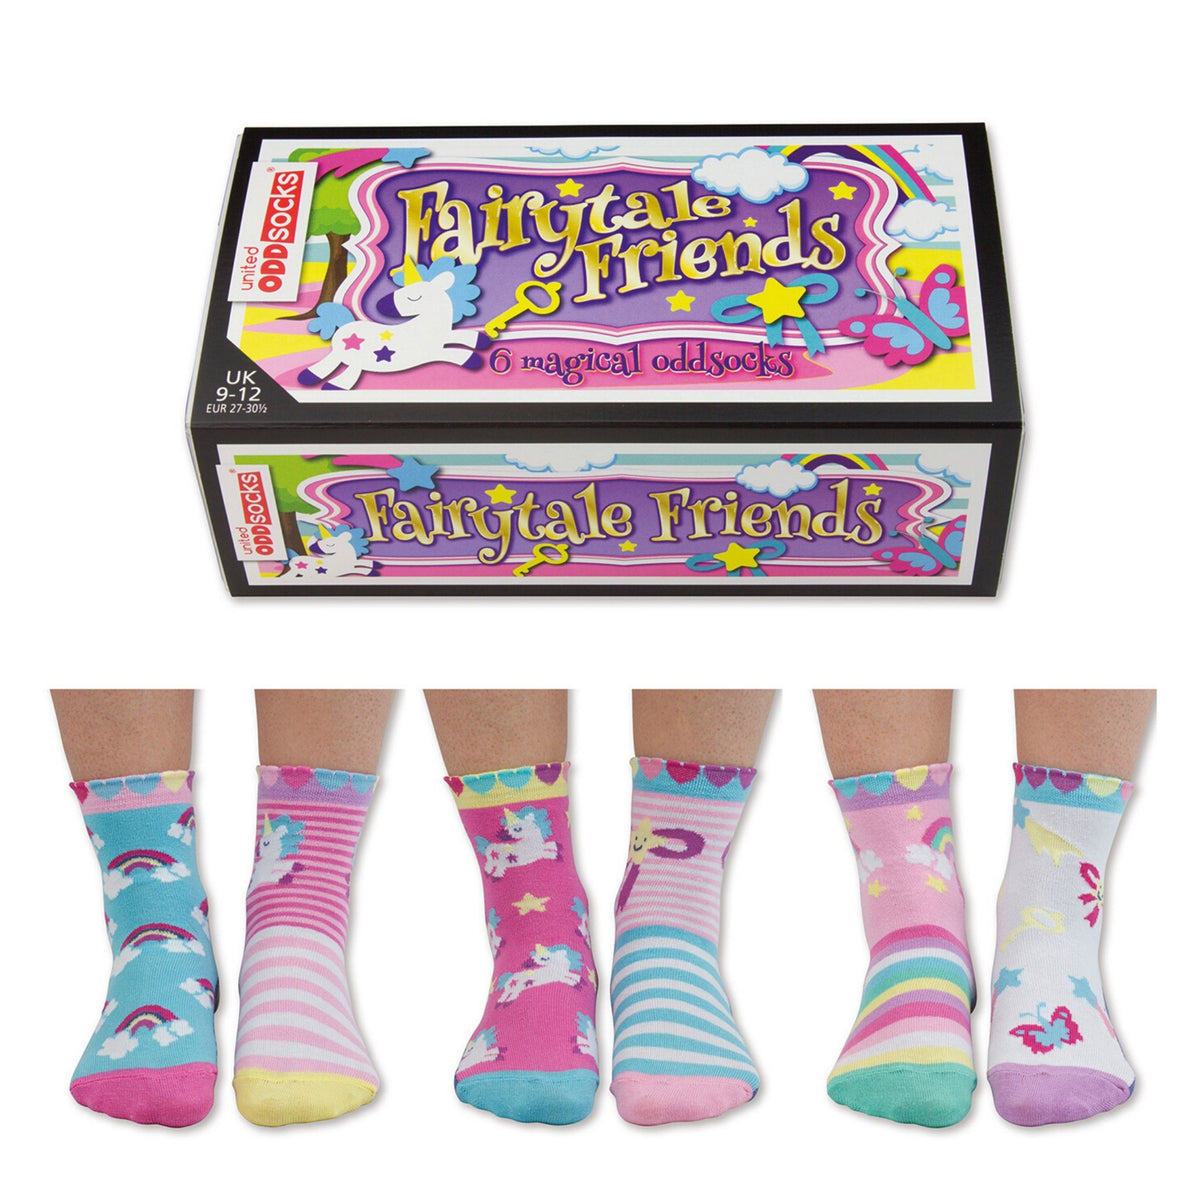 Fairytale Friends Kids' OddSocks (shoe size 9-12)